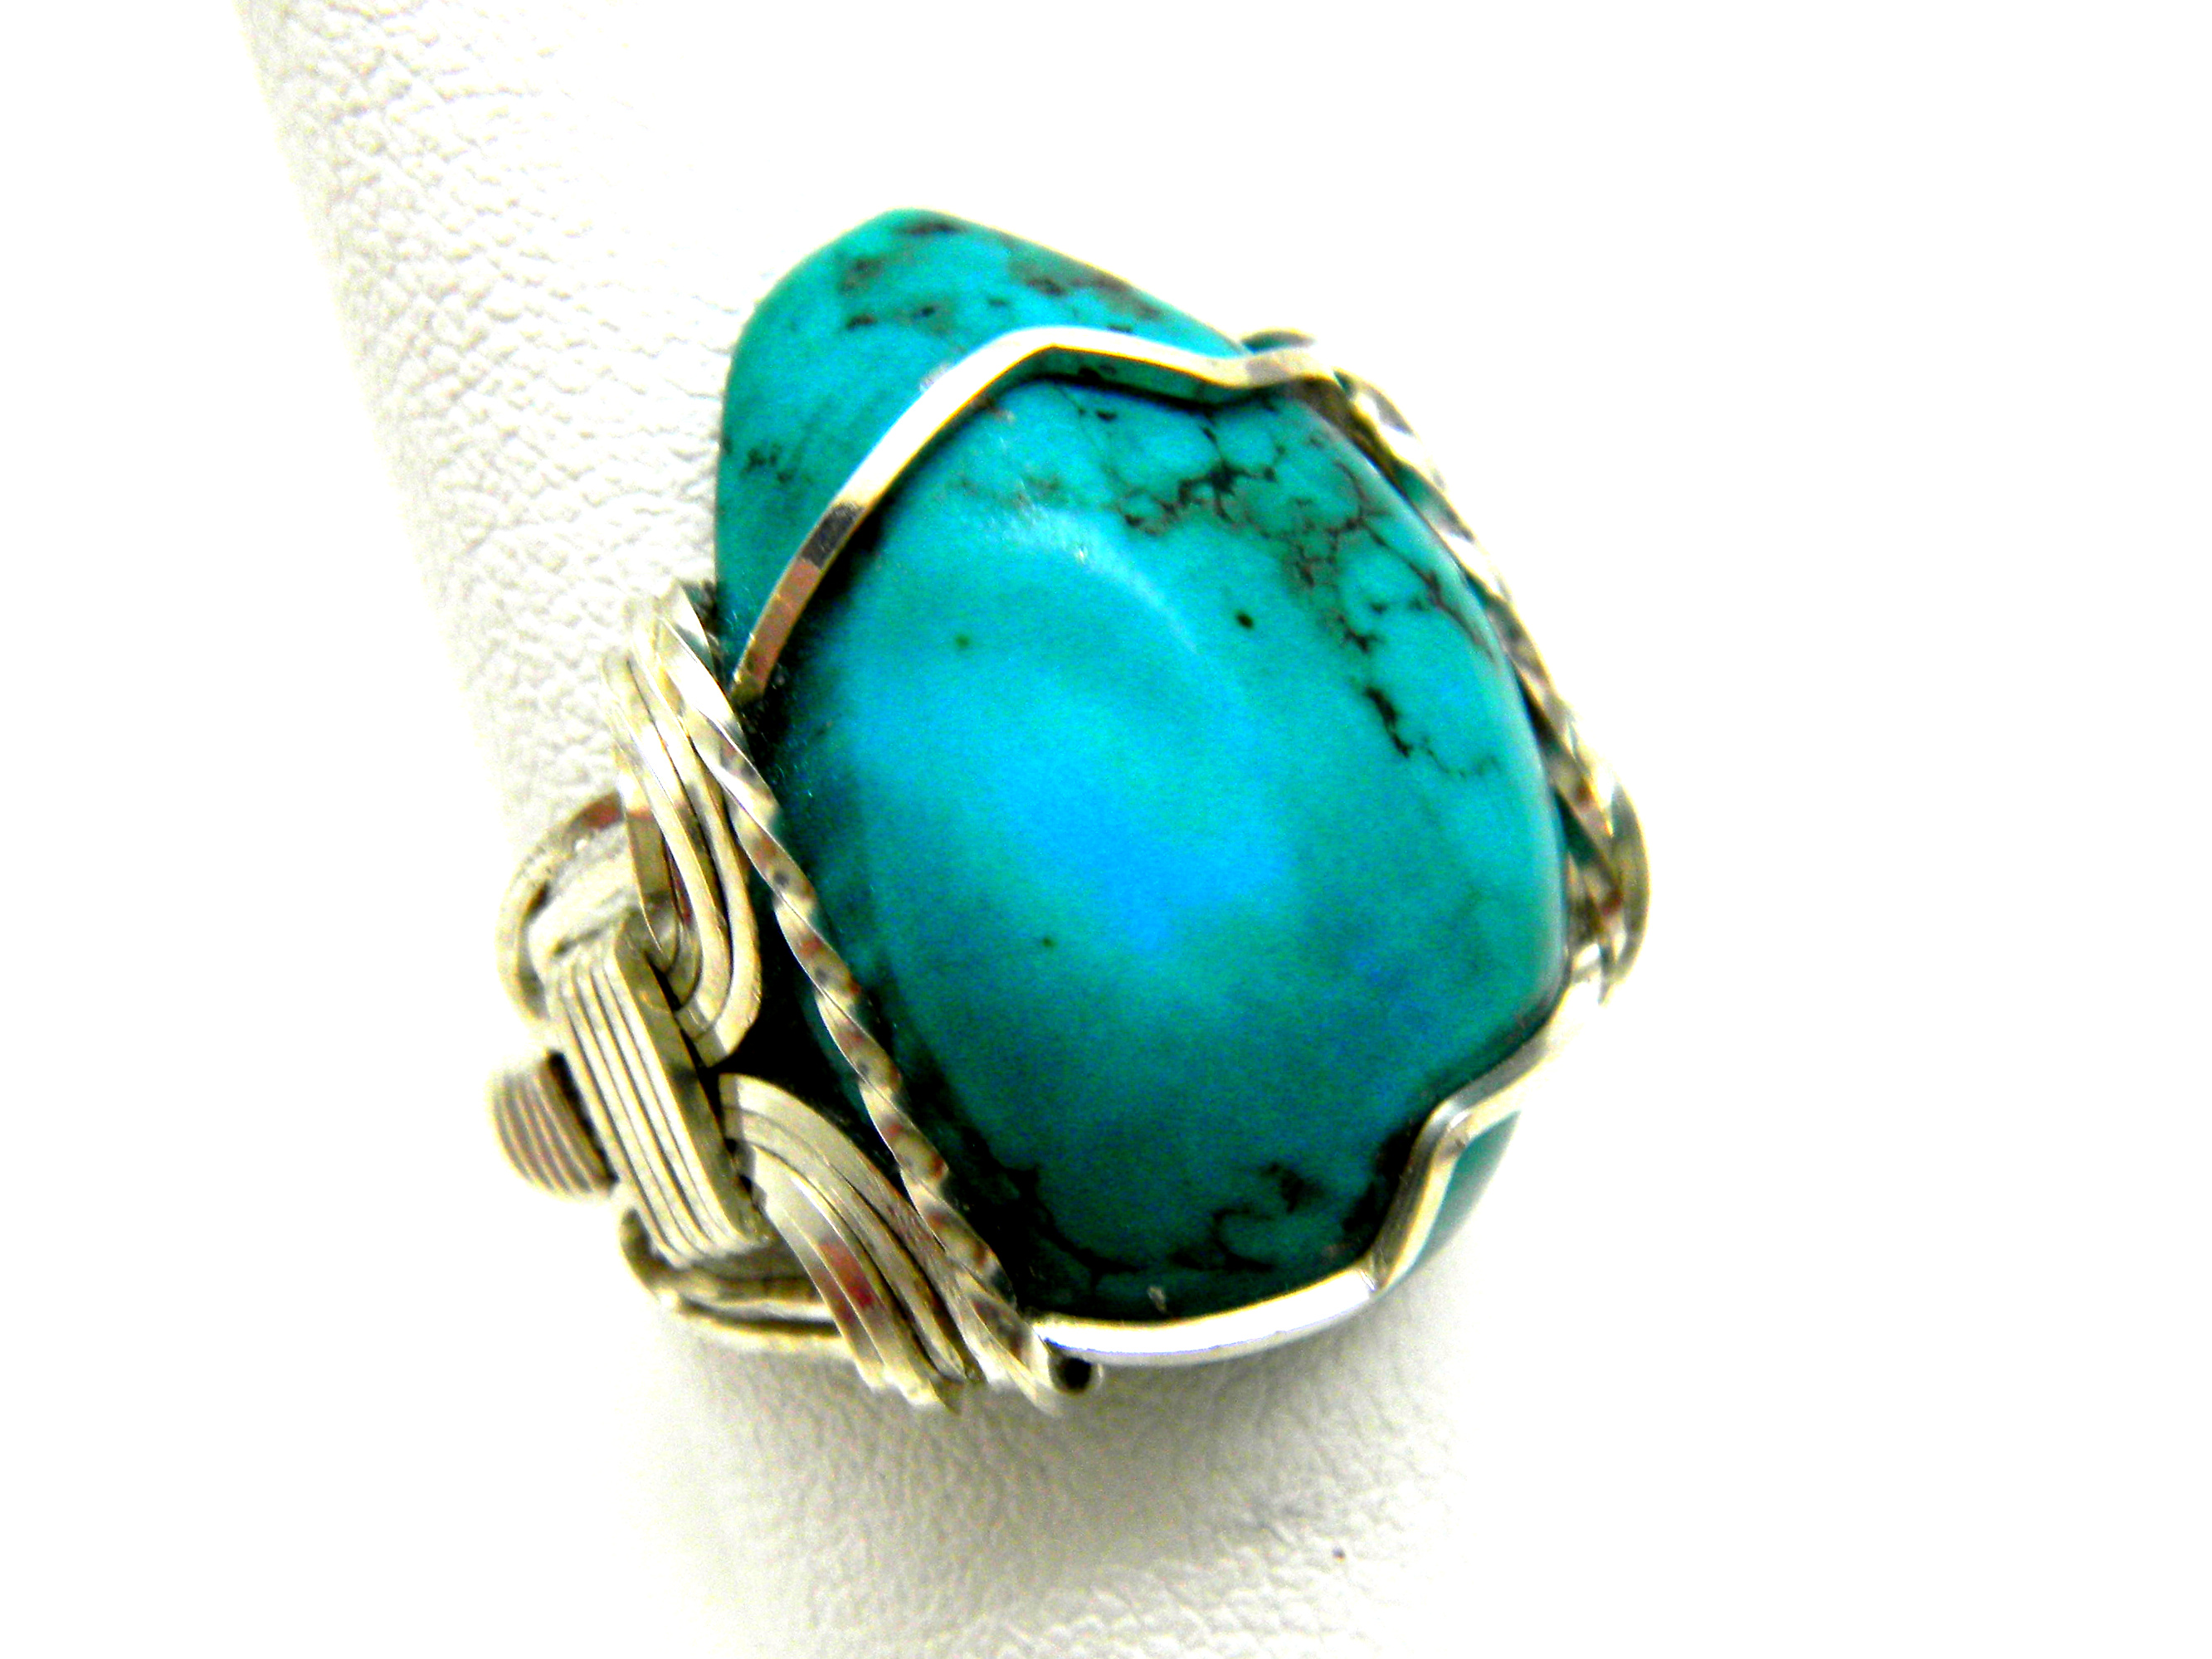 About Turquoise - Stabilizing Turquoise | Jewelry Making Blog ...